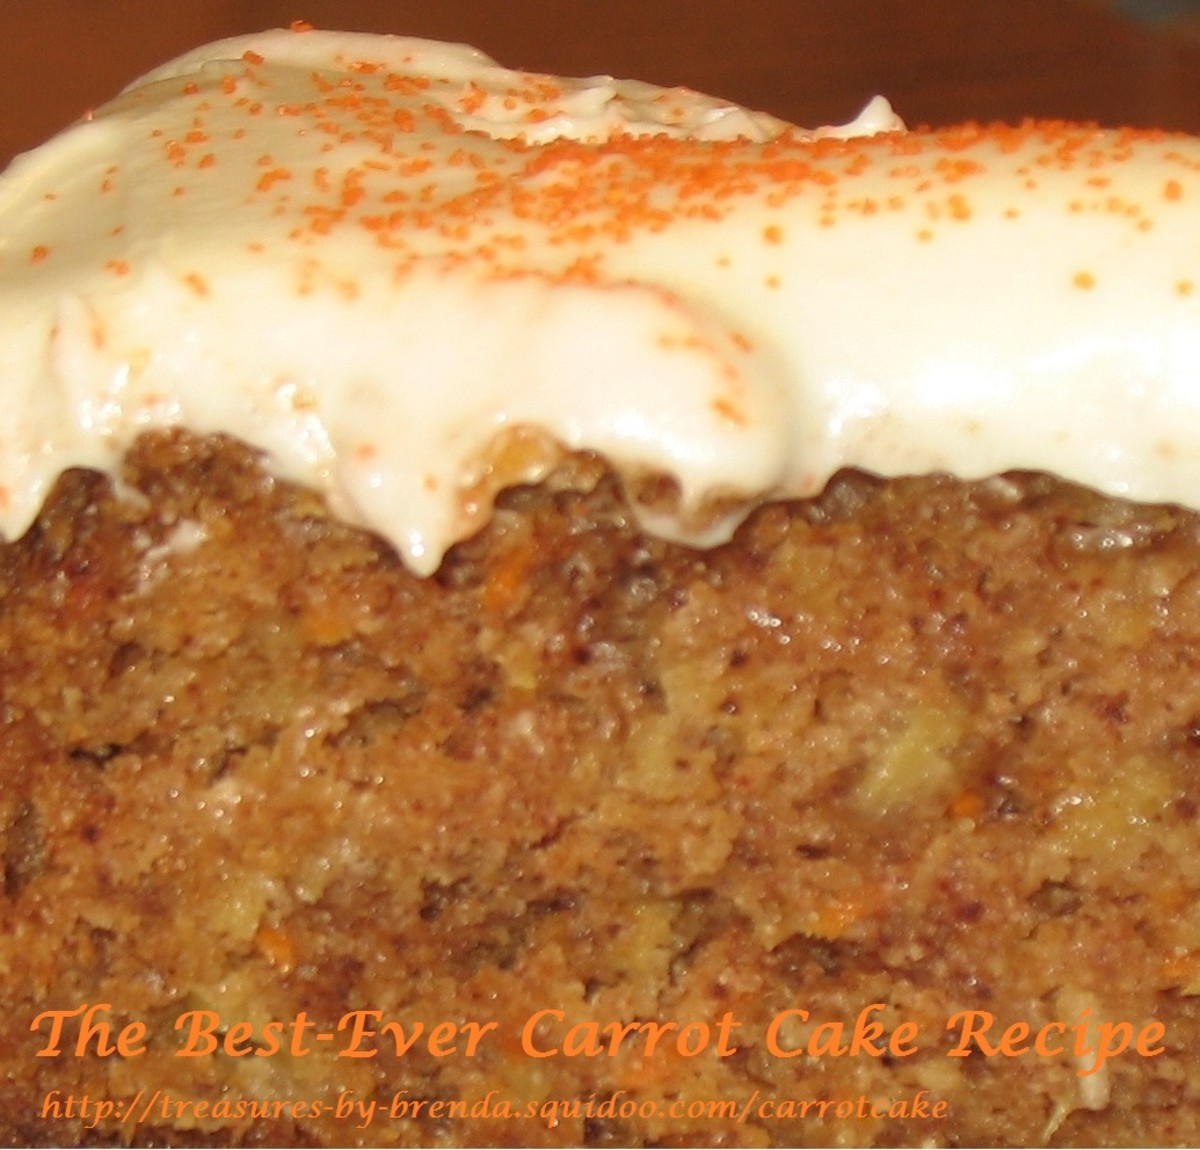 The Best-Ever Carrot Cake Recipe